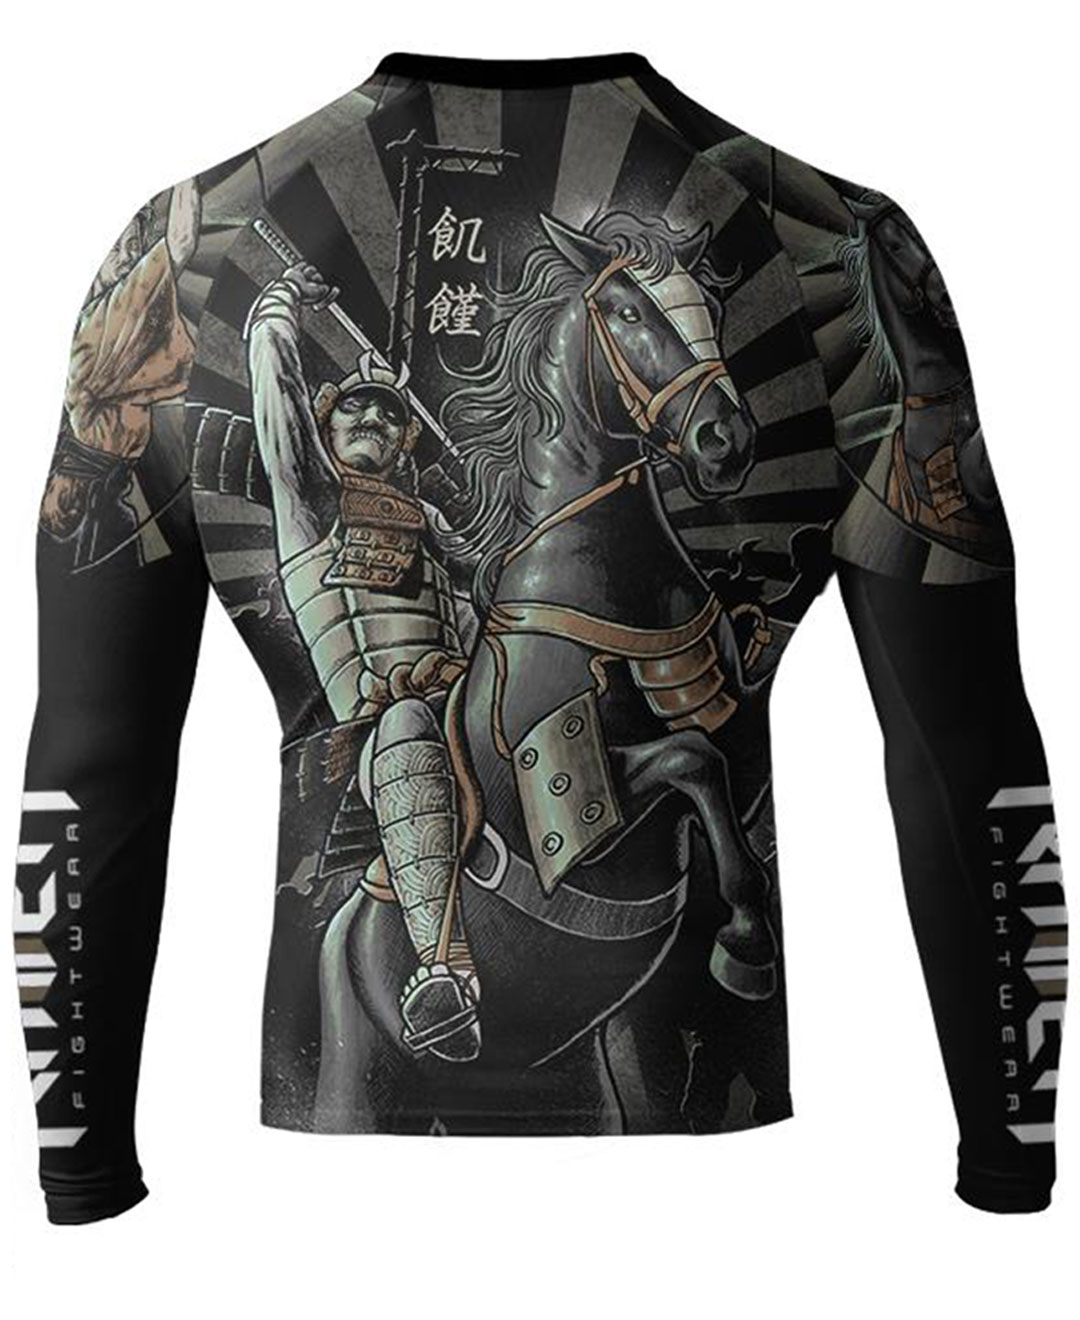 Raven Fightwear Men/'s Horsemen of the Apocalypse Famine Samurai Rash Guard